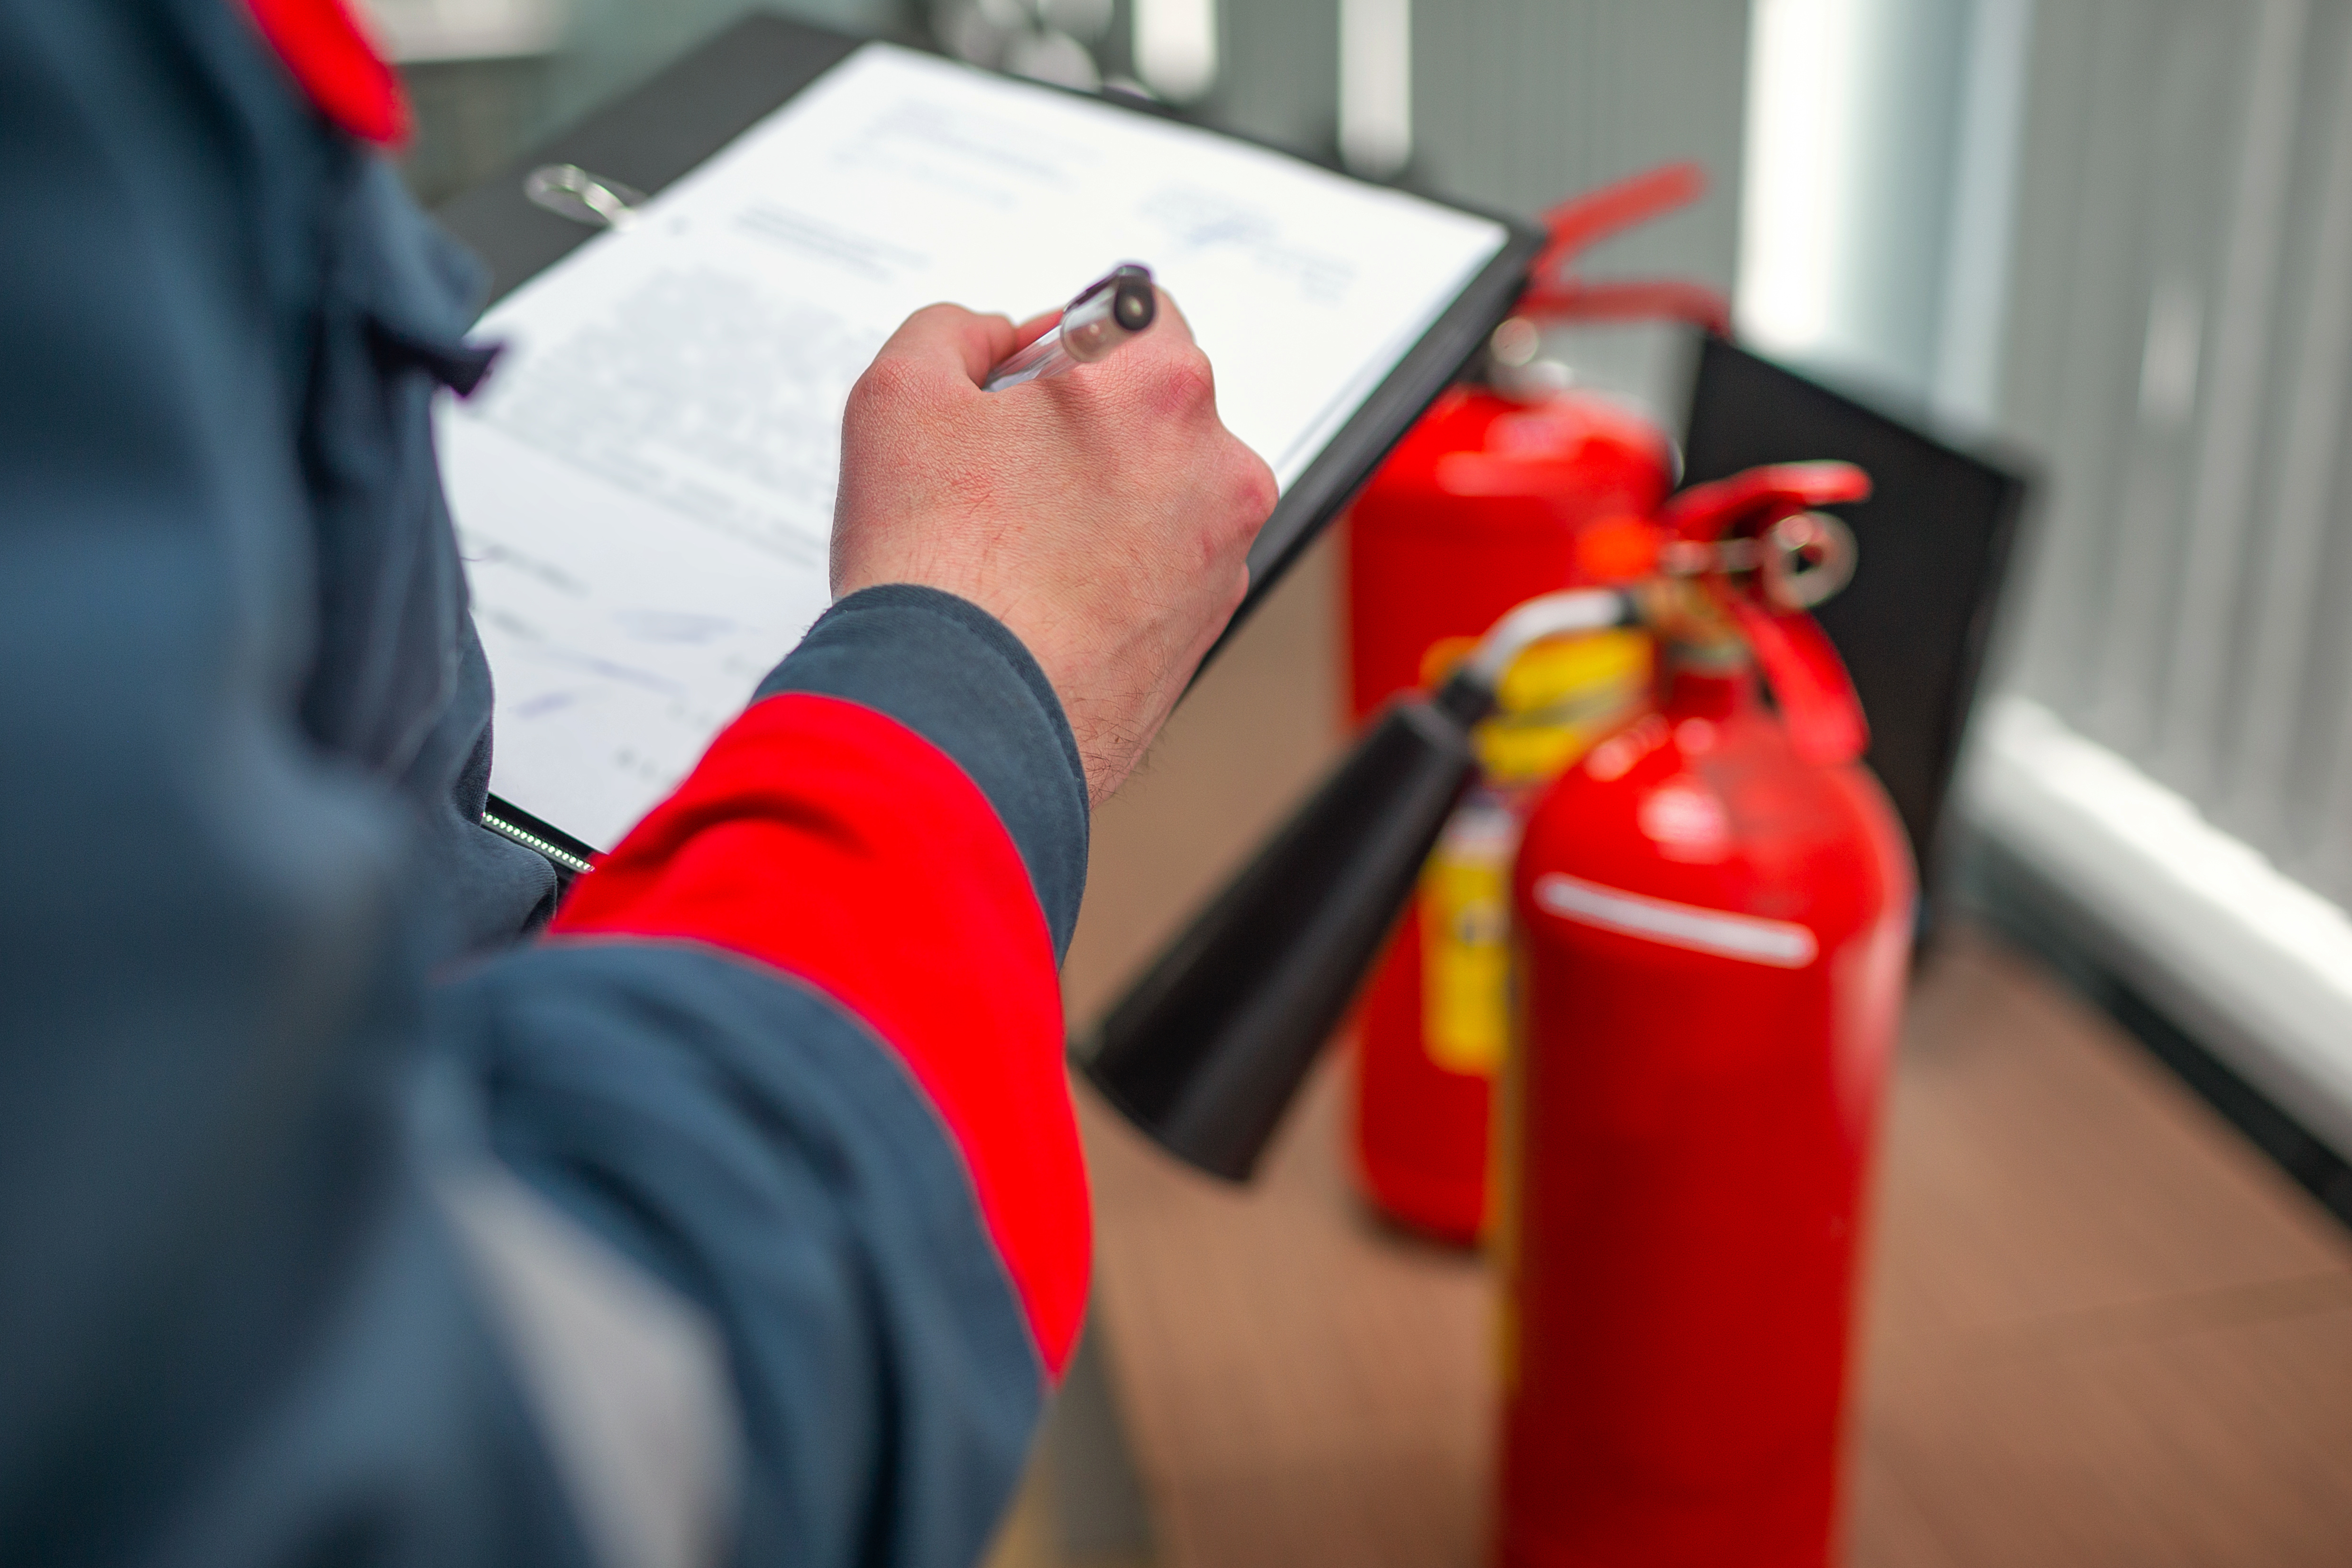 Fire system inspector taking notes on system